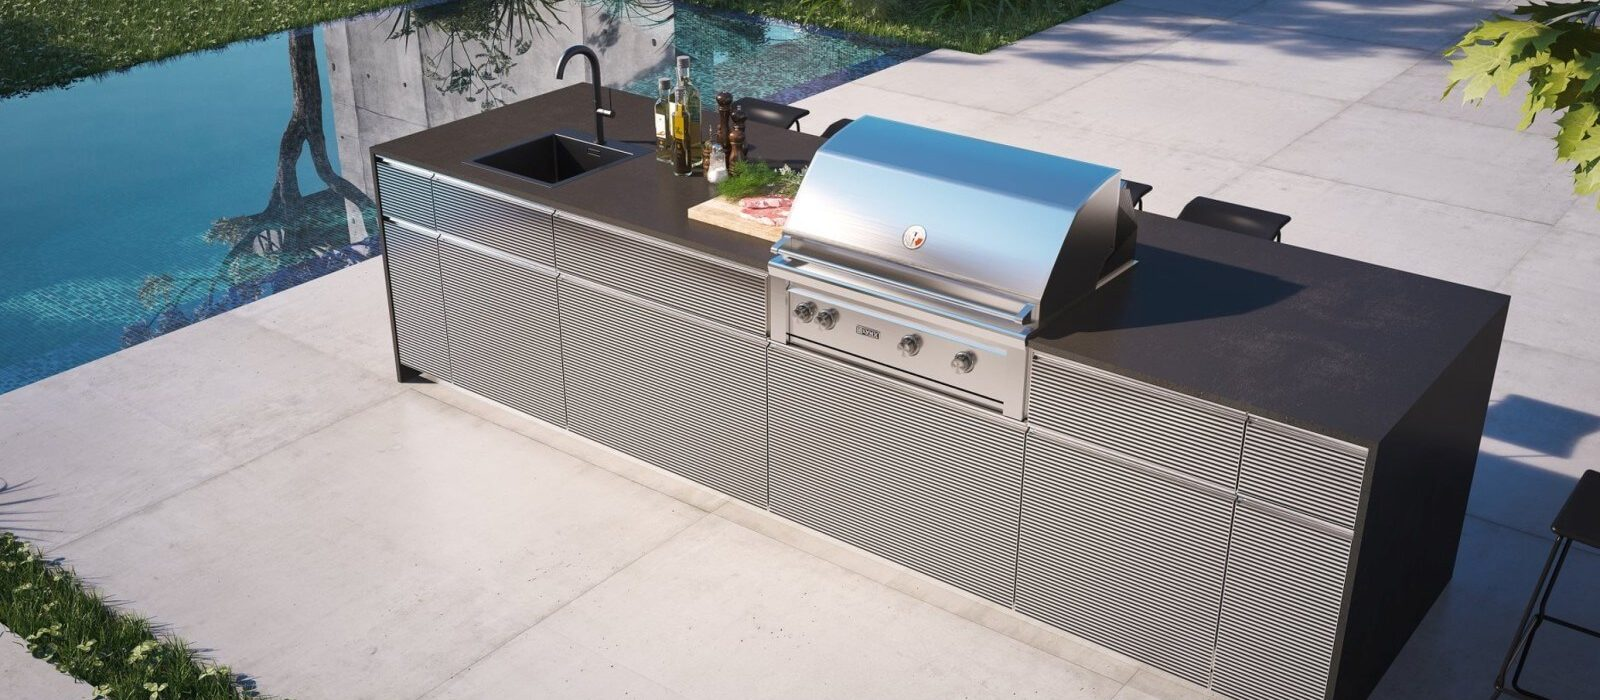 outopia outdoor kitchens by klein's